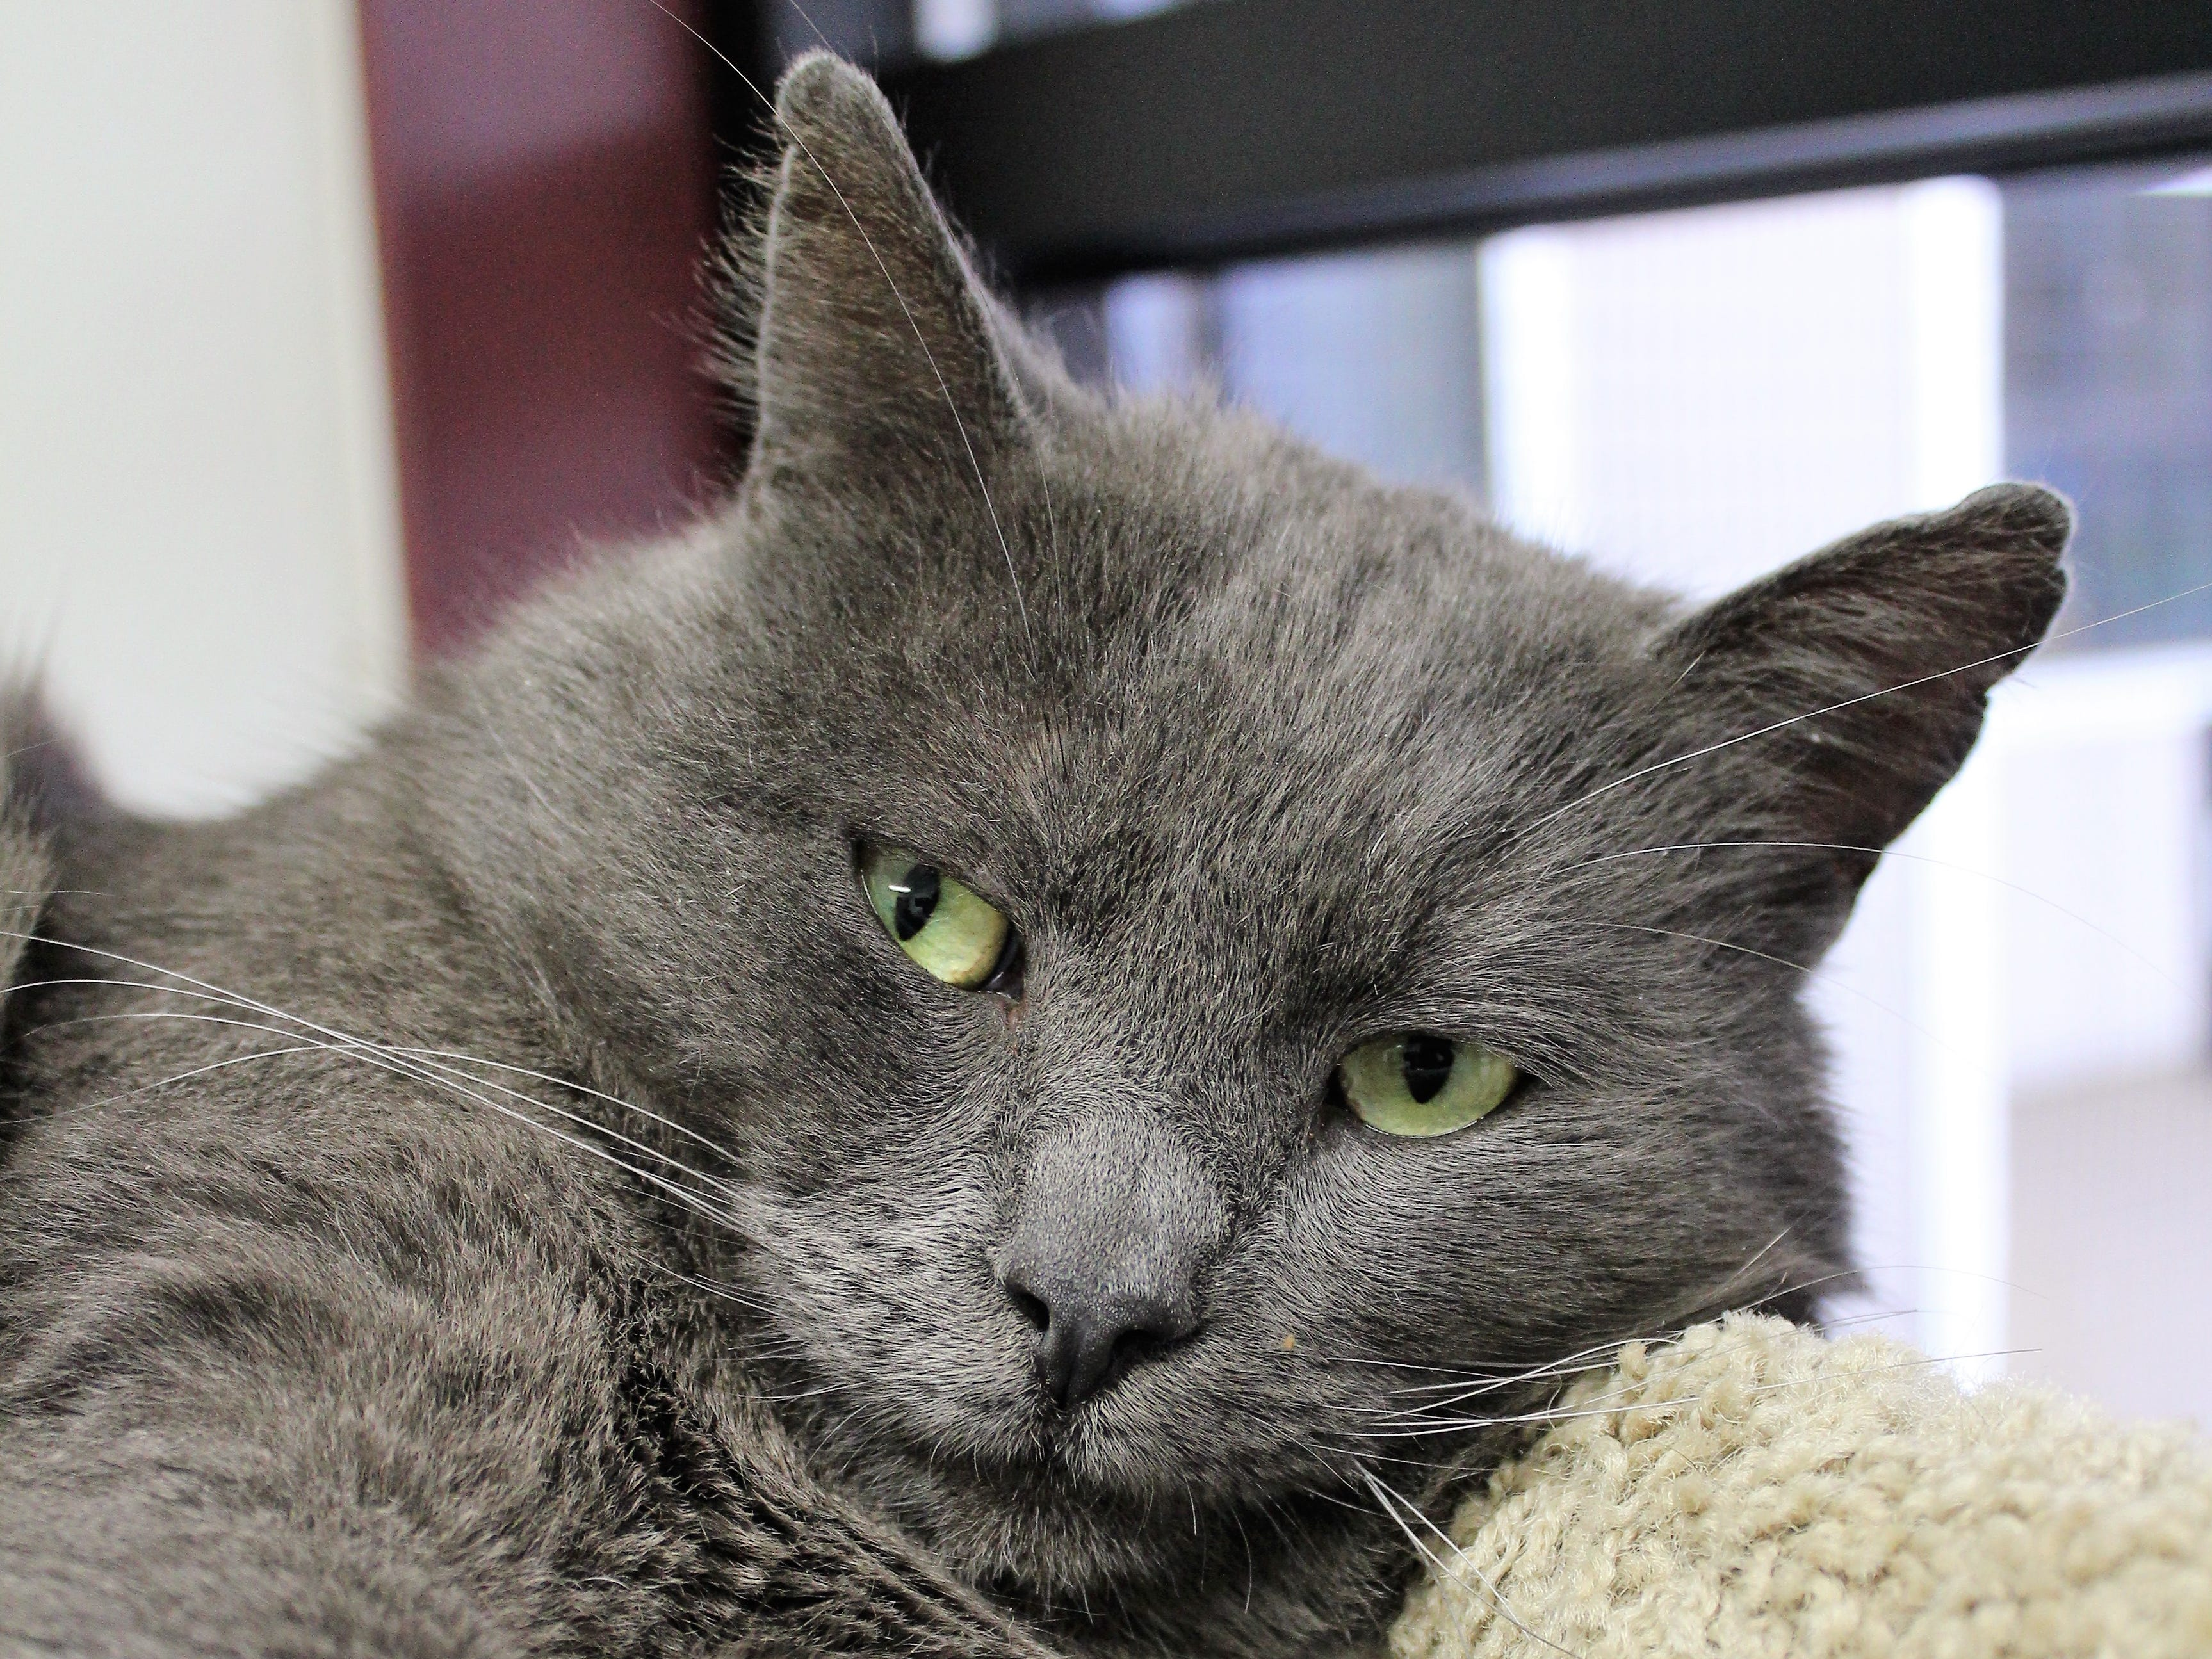 Momoa is a 3-year-old shorthaired cat. He was living as a stray cat, so not much is known about his past. Momoa does get along nicely with other cats and he has an amazing play style. To find out more, call Willamette Humane Society at 503-585-5900 or visit www.whs4pets.org.